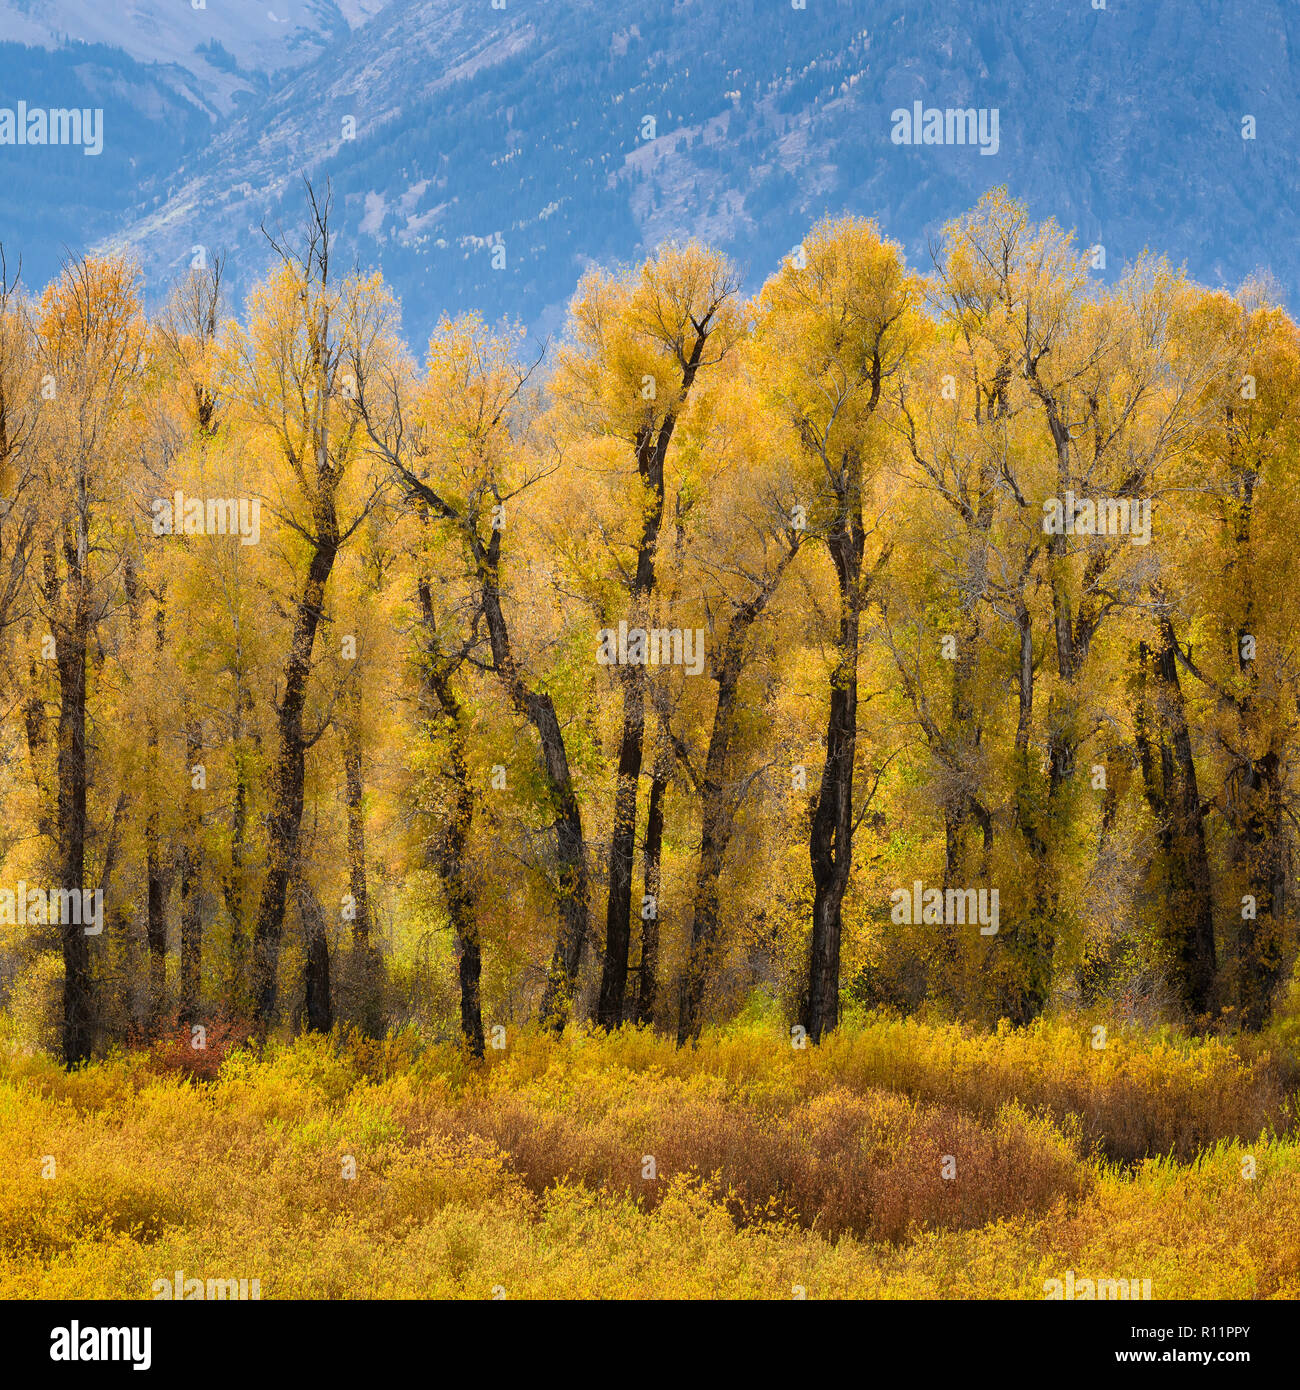 Cottonwood trees and willows in autumn at Blacktail Ponds in Grand Teton National Park, Wyoming. - Stock Image